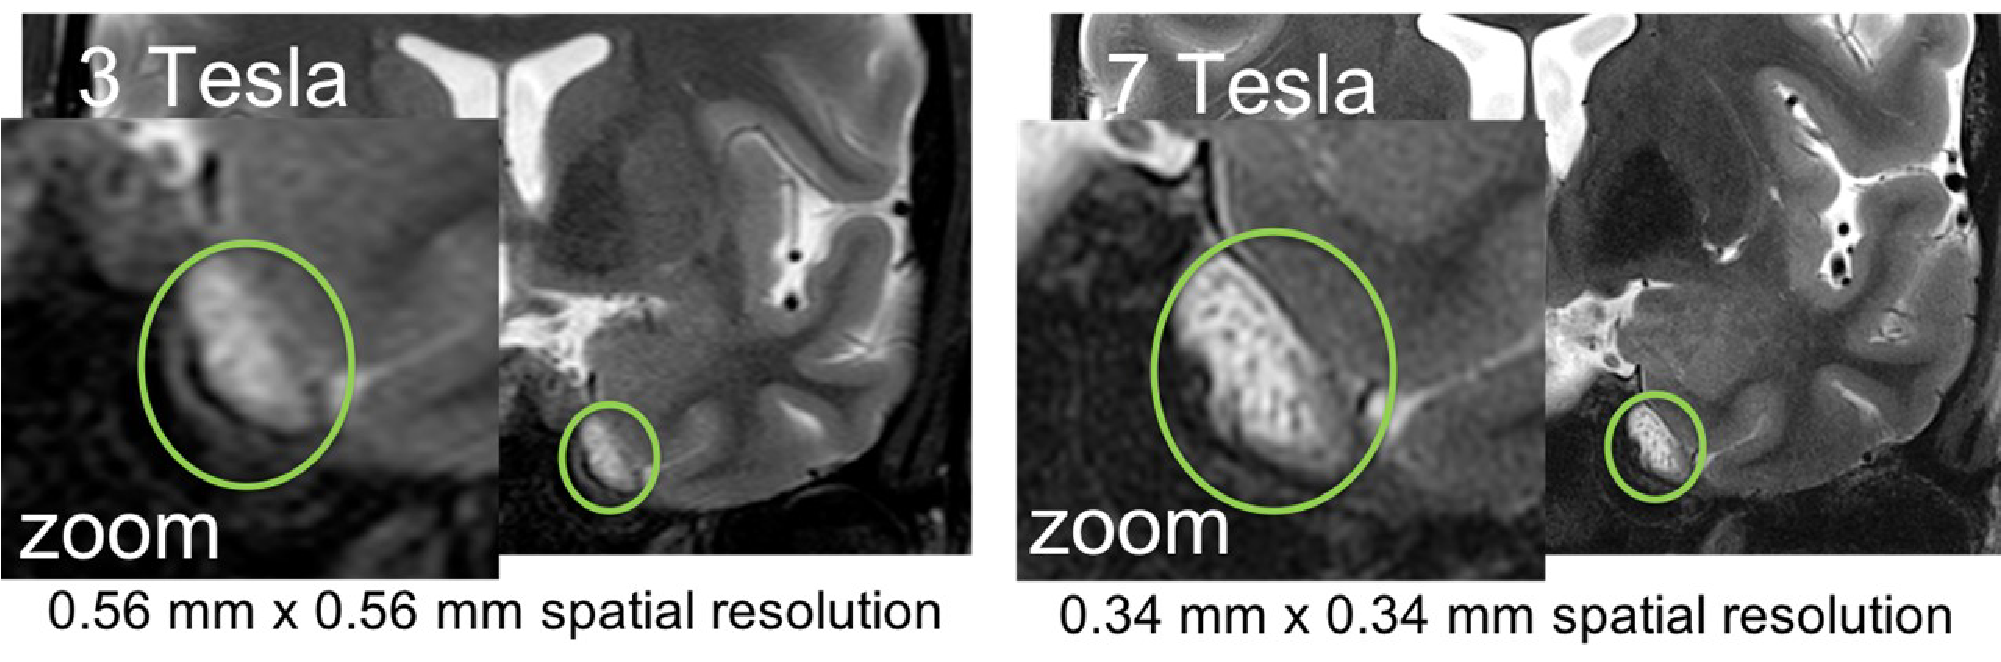 MRI images showing a slice of brain with perineural cancer spread. The images highlight a region which is blurry in 3T and well defined in 7T.